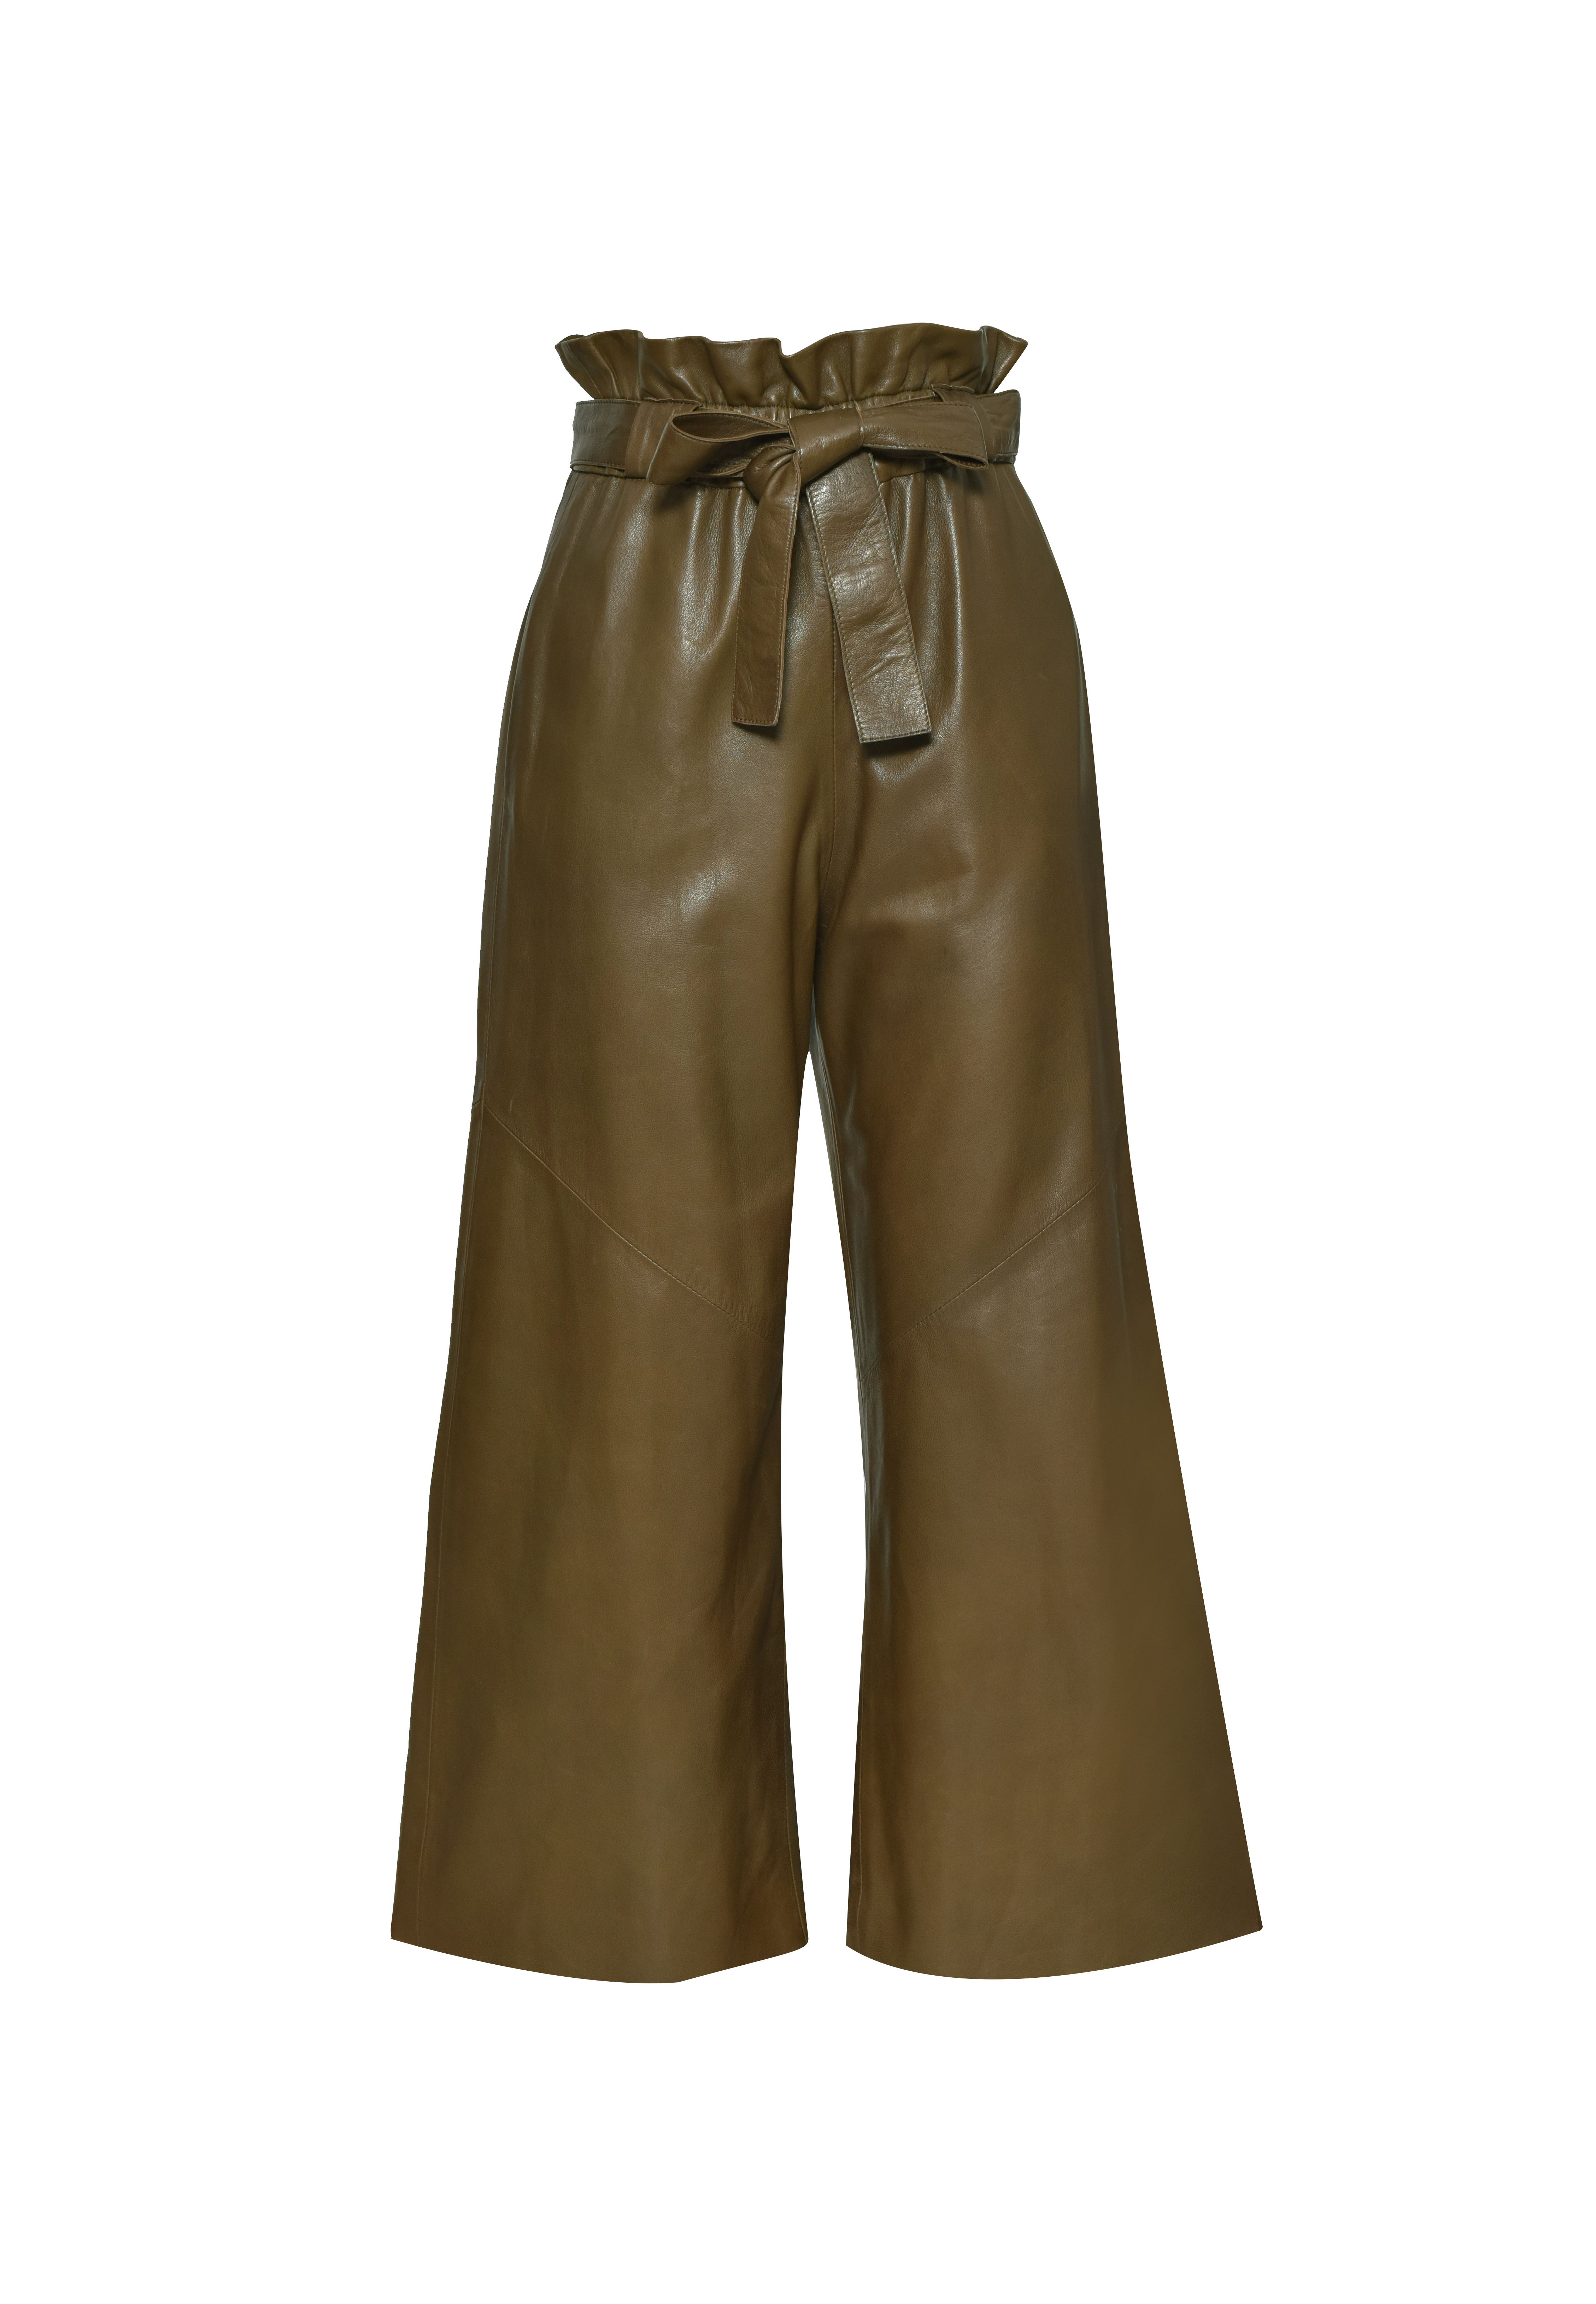 High Waisted Leather Pants - Green by The Ruf on curated-crowd.com